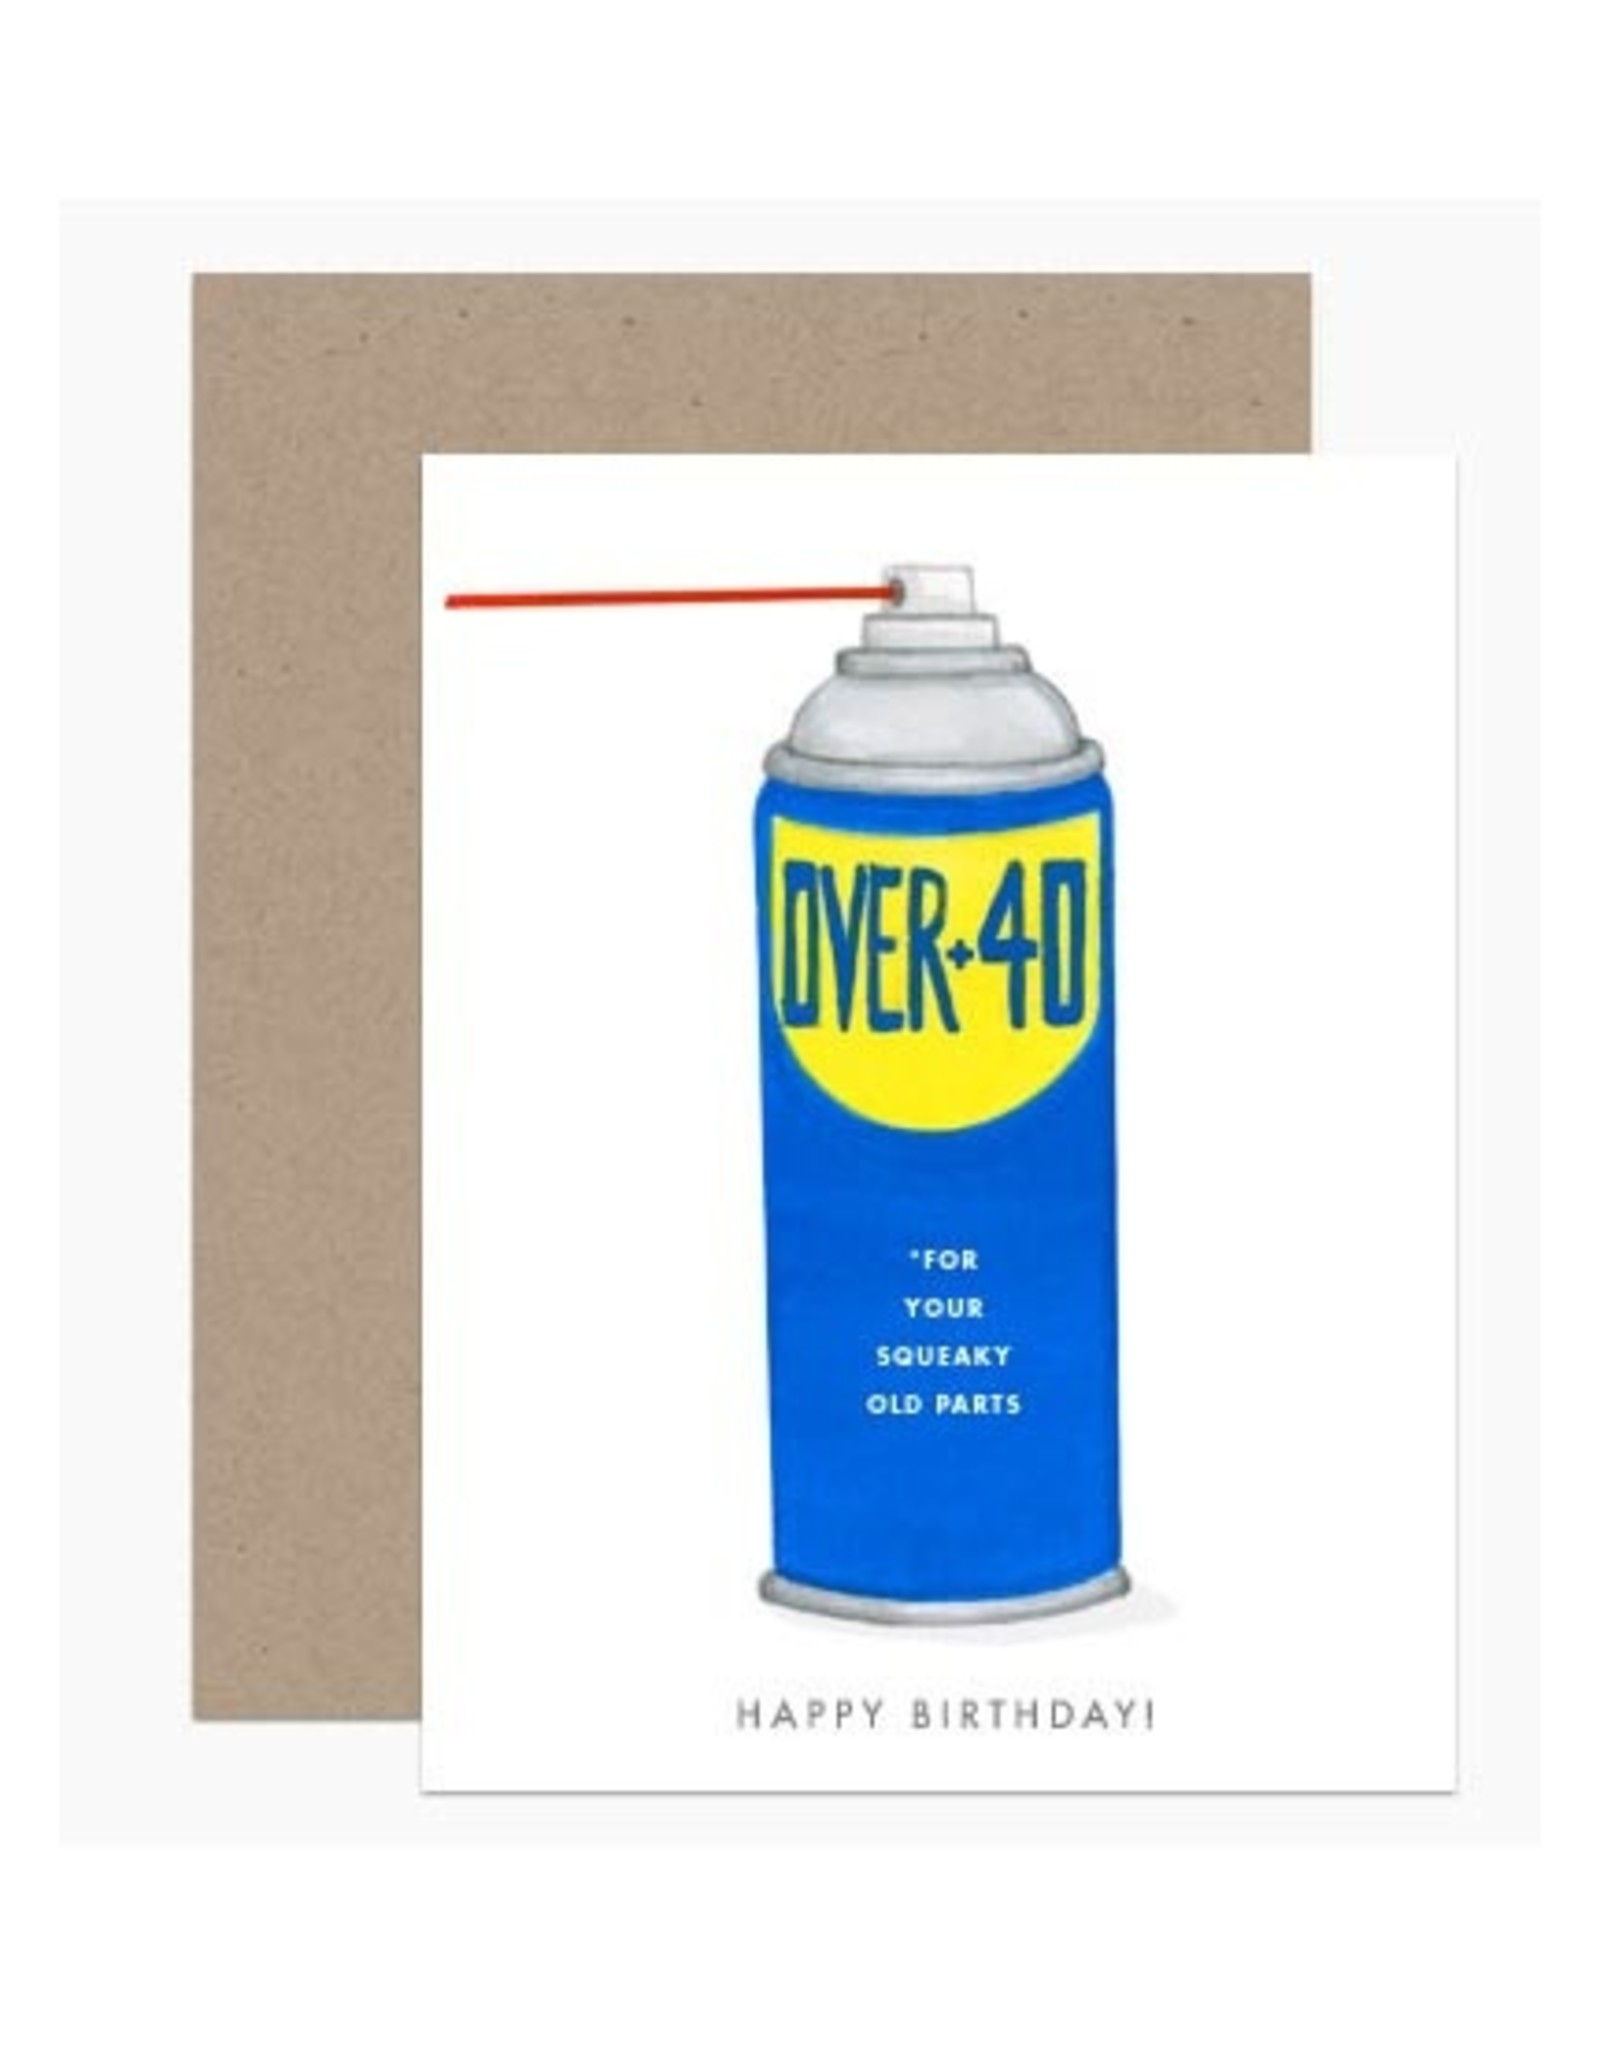 Happy Birthday Over 40 Greeting Card